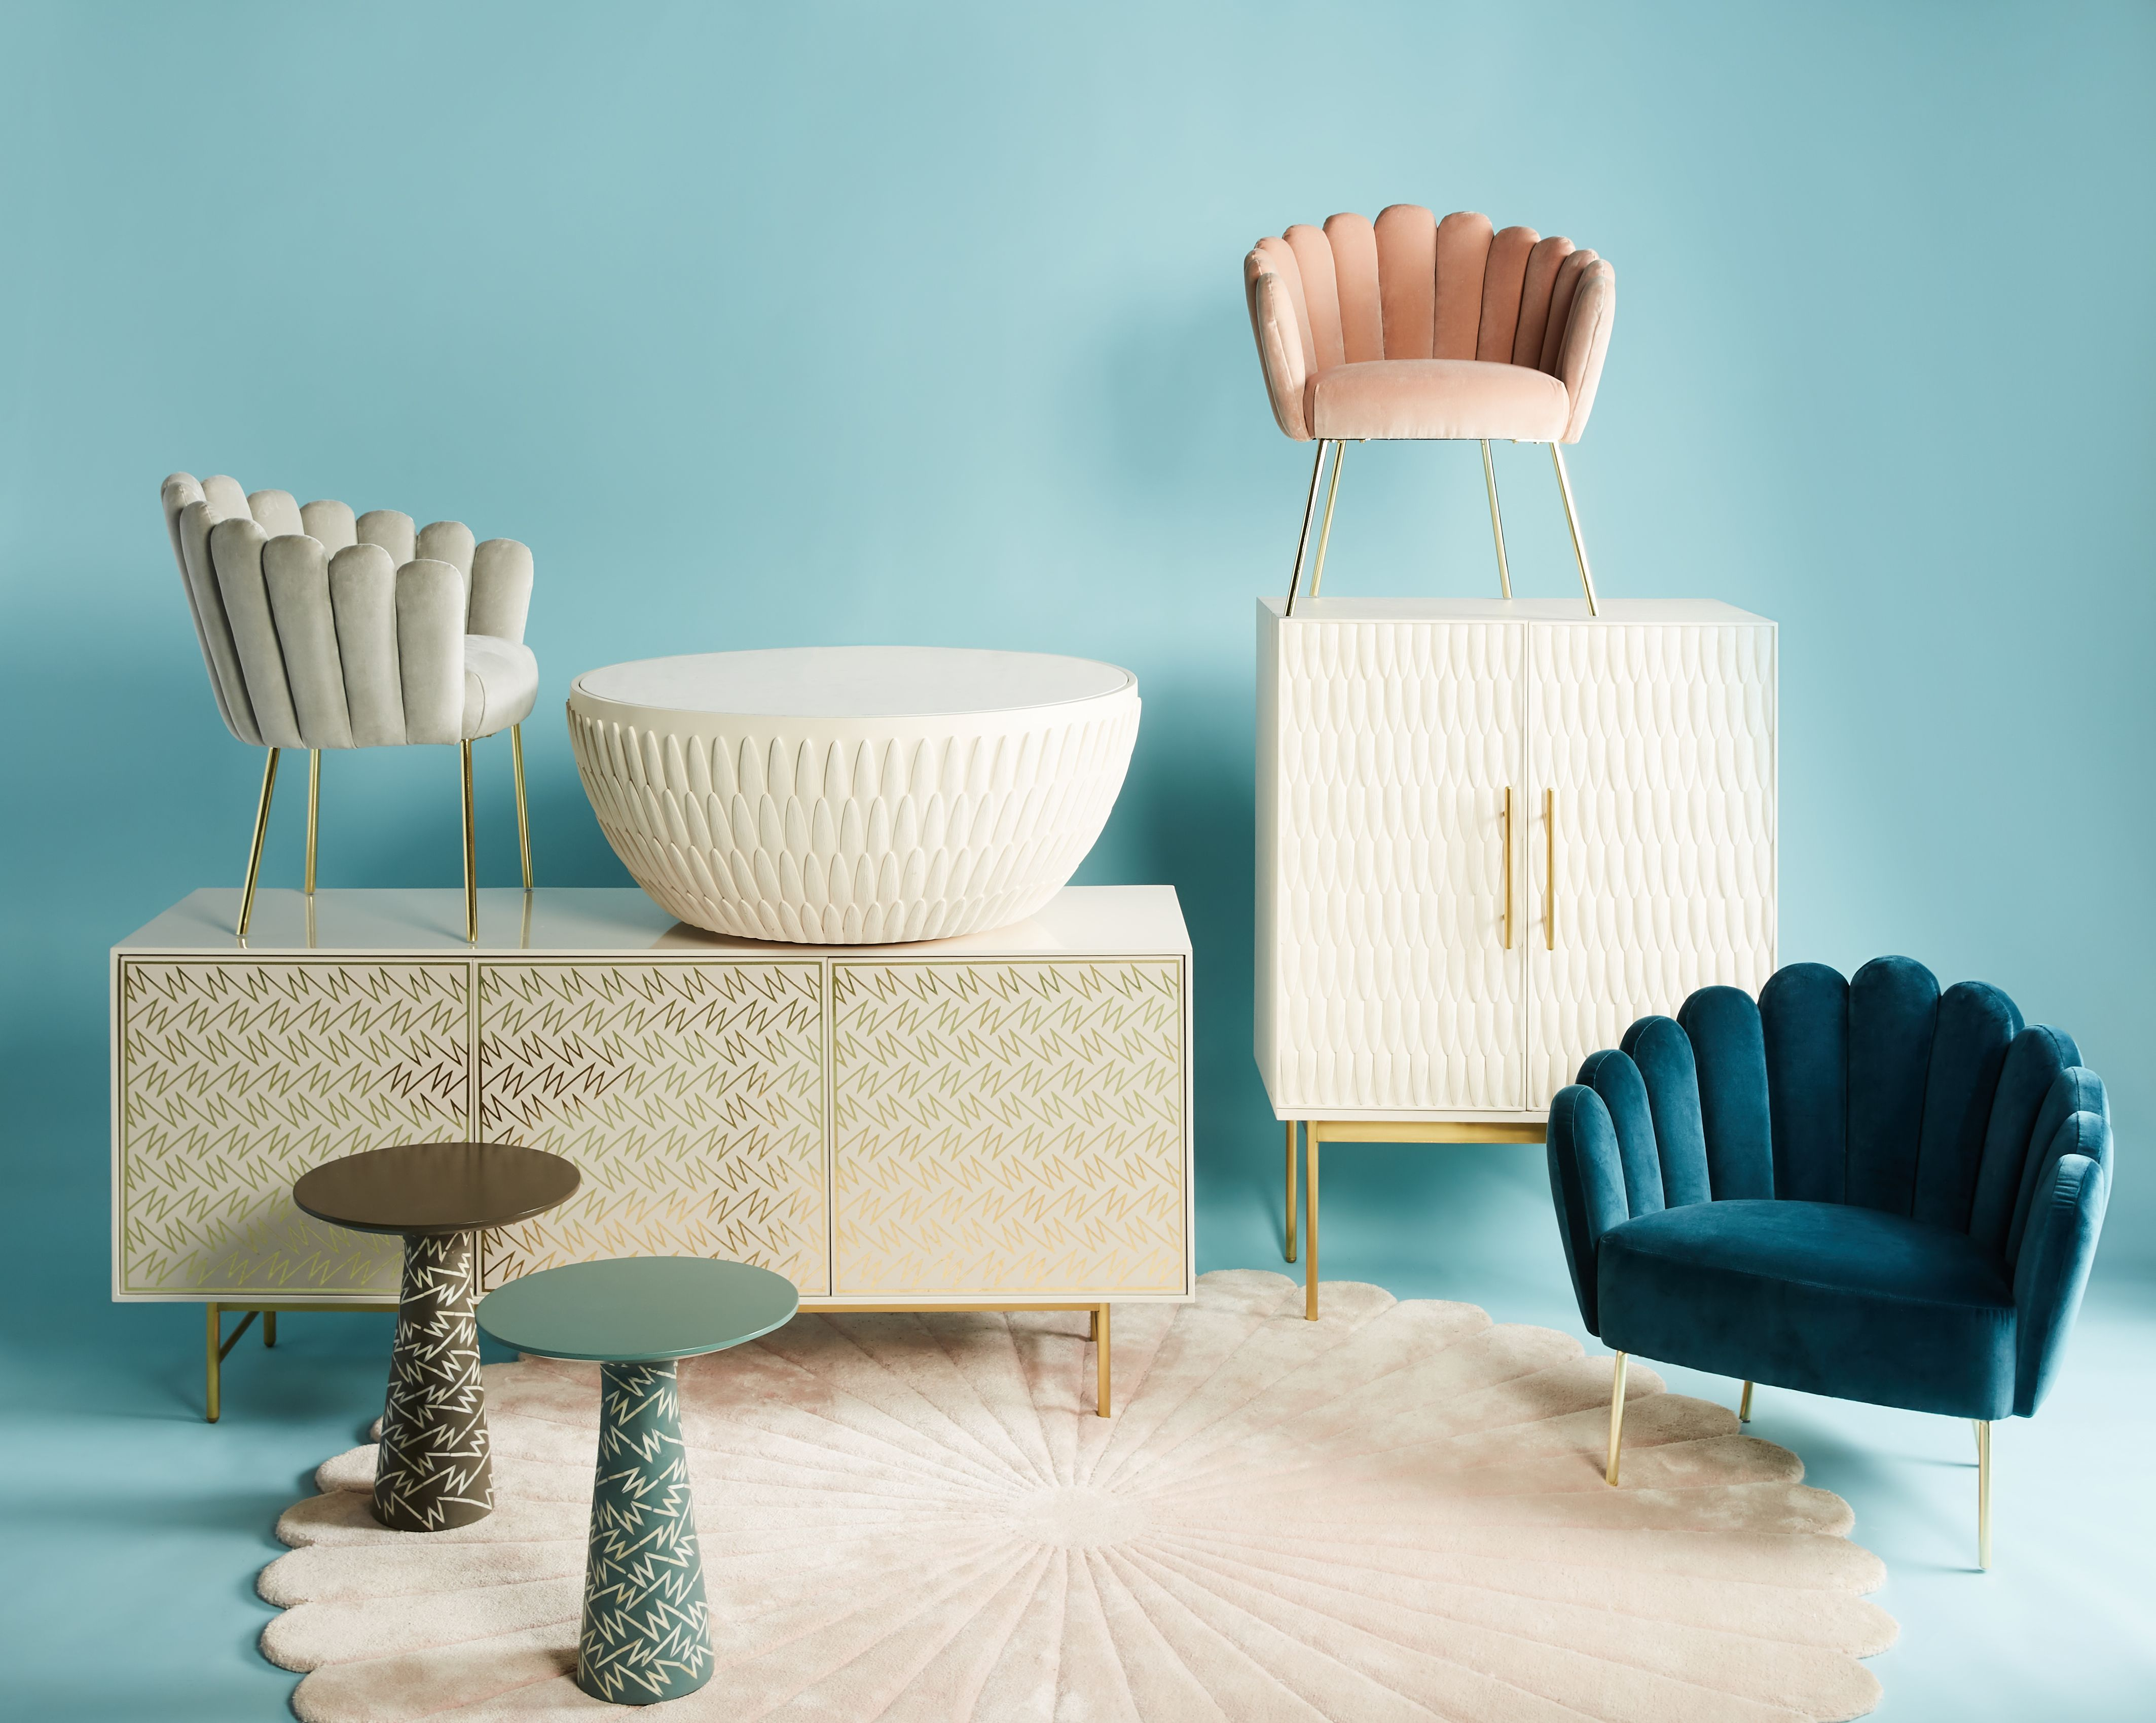 Anthroplogie S Latest Collab Has Us Ready To Get Cozy For Fall Grey Home Decor Furniture Interior